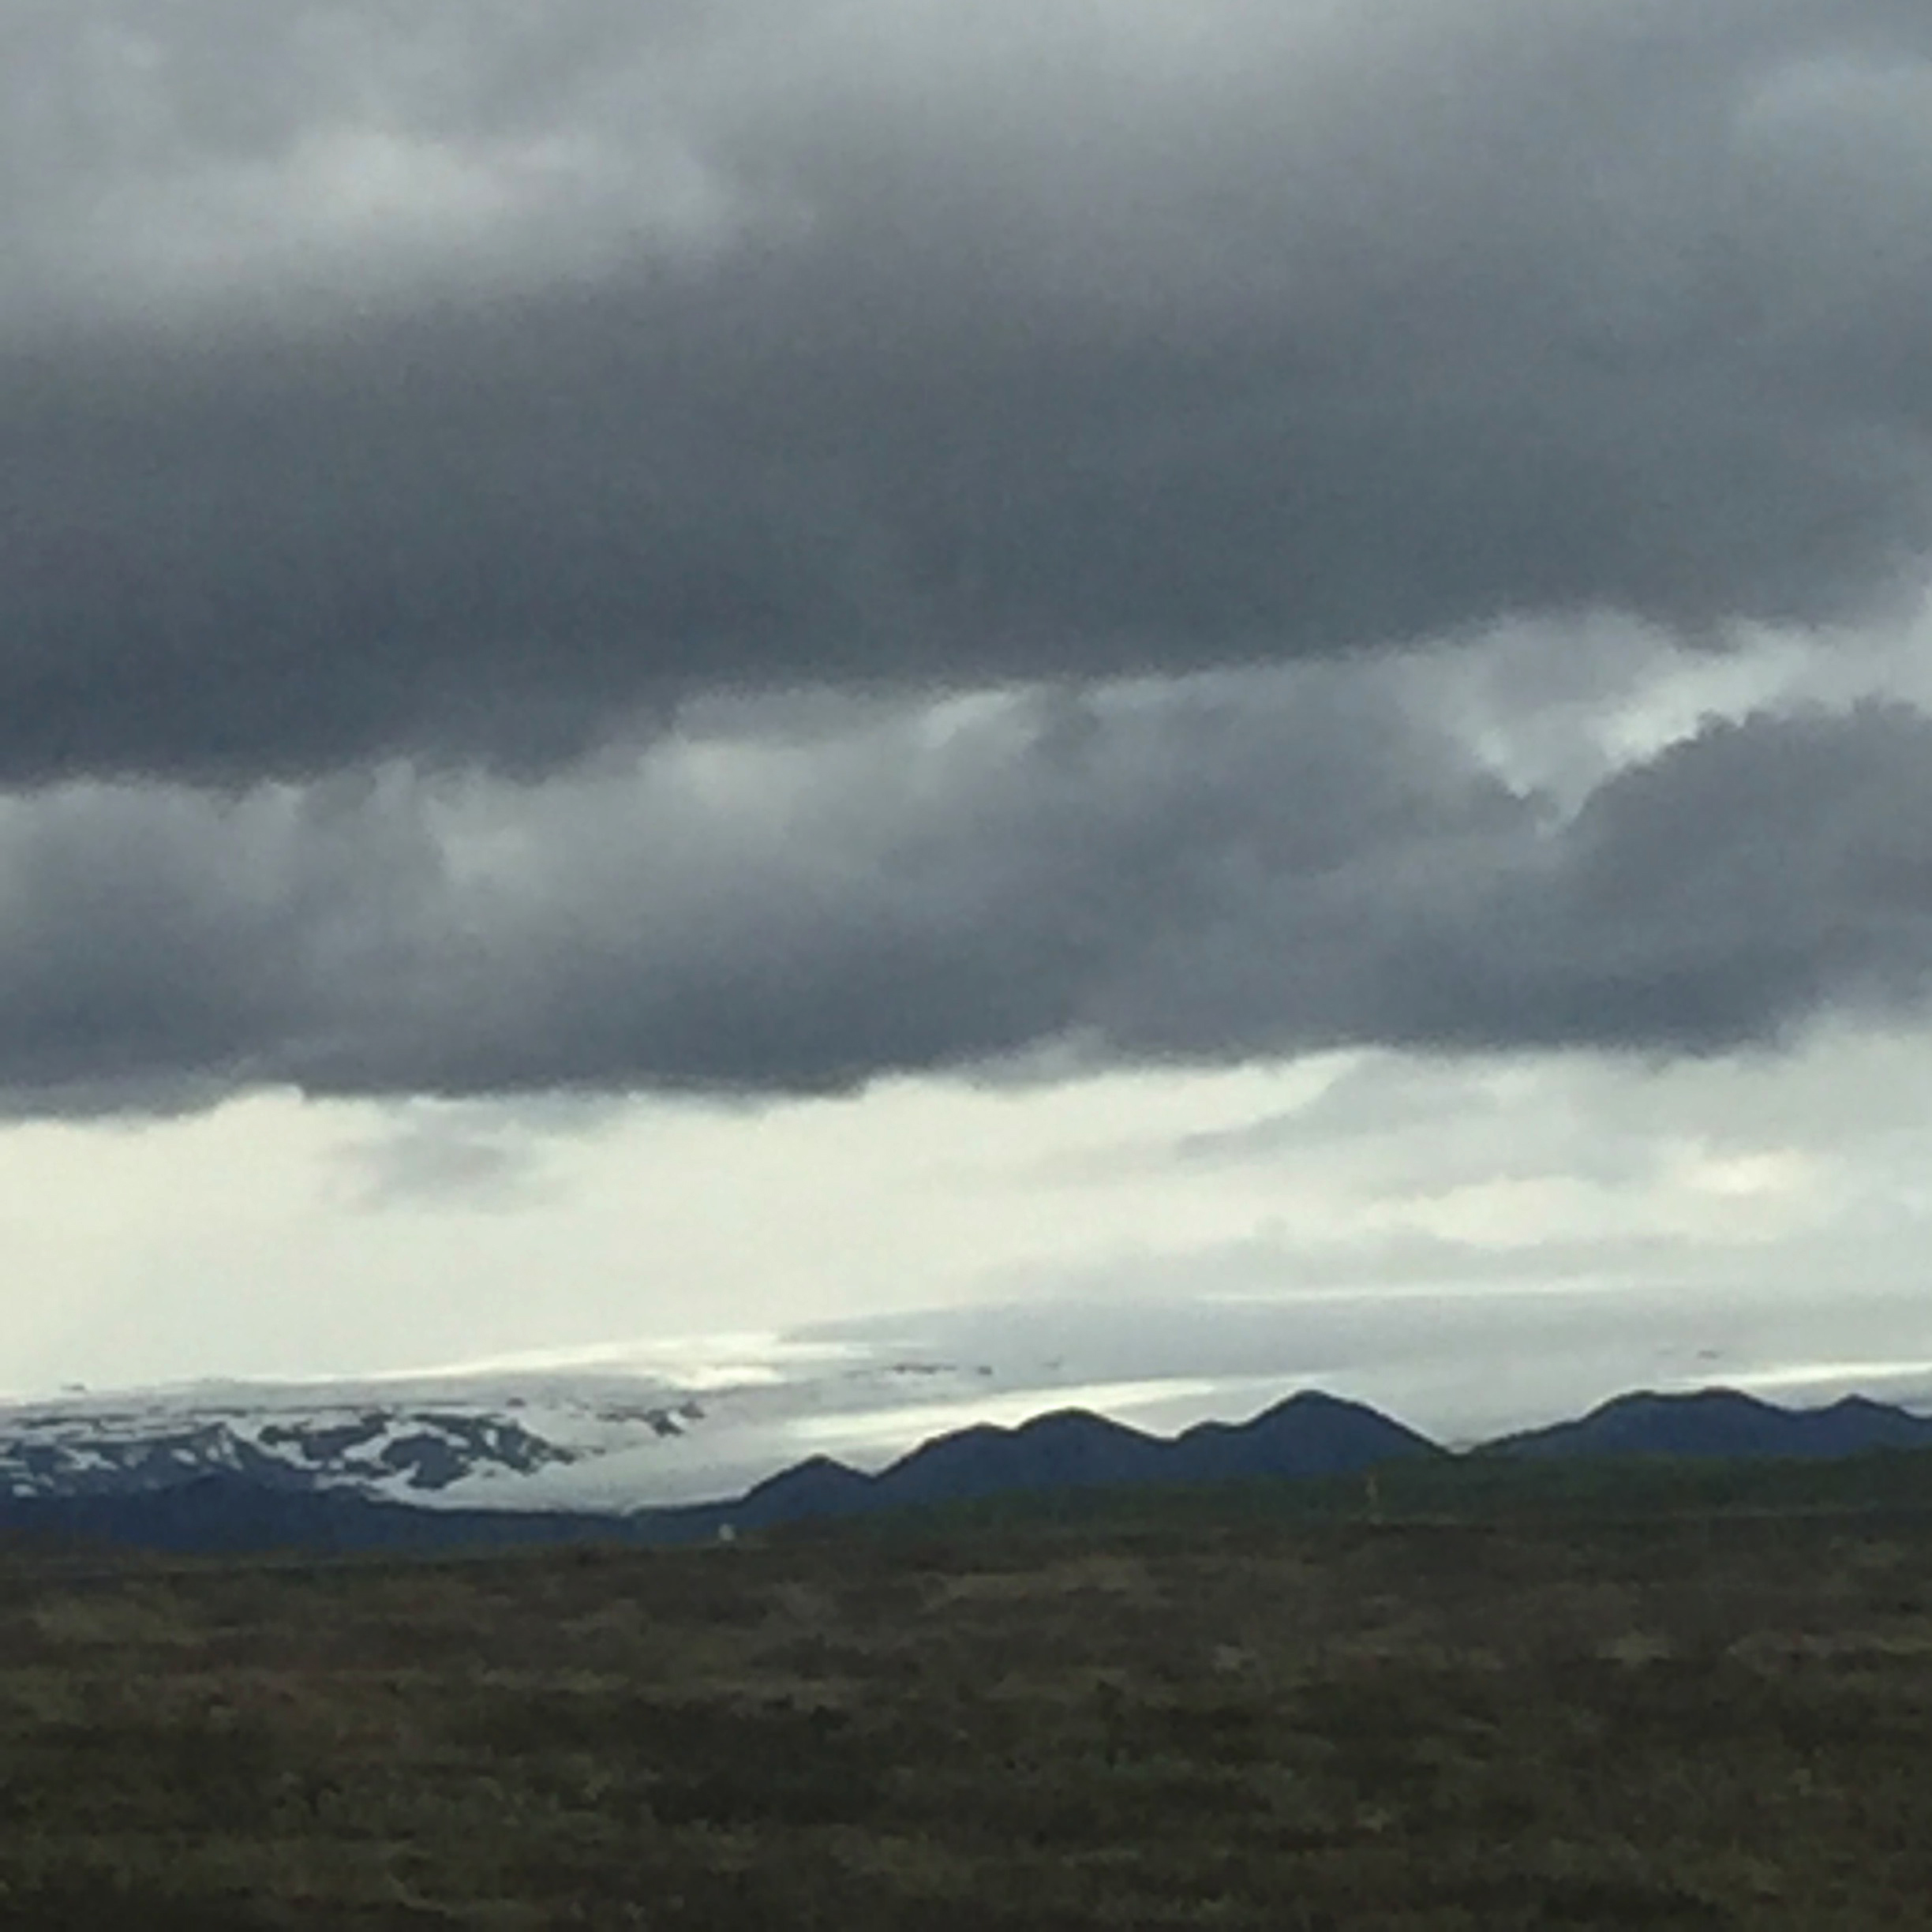 The glacier is visible merging into cloud. It could be Vatnajökul, the largest glacier in Europe.